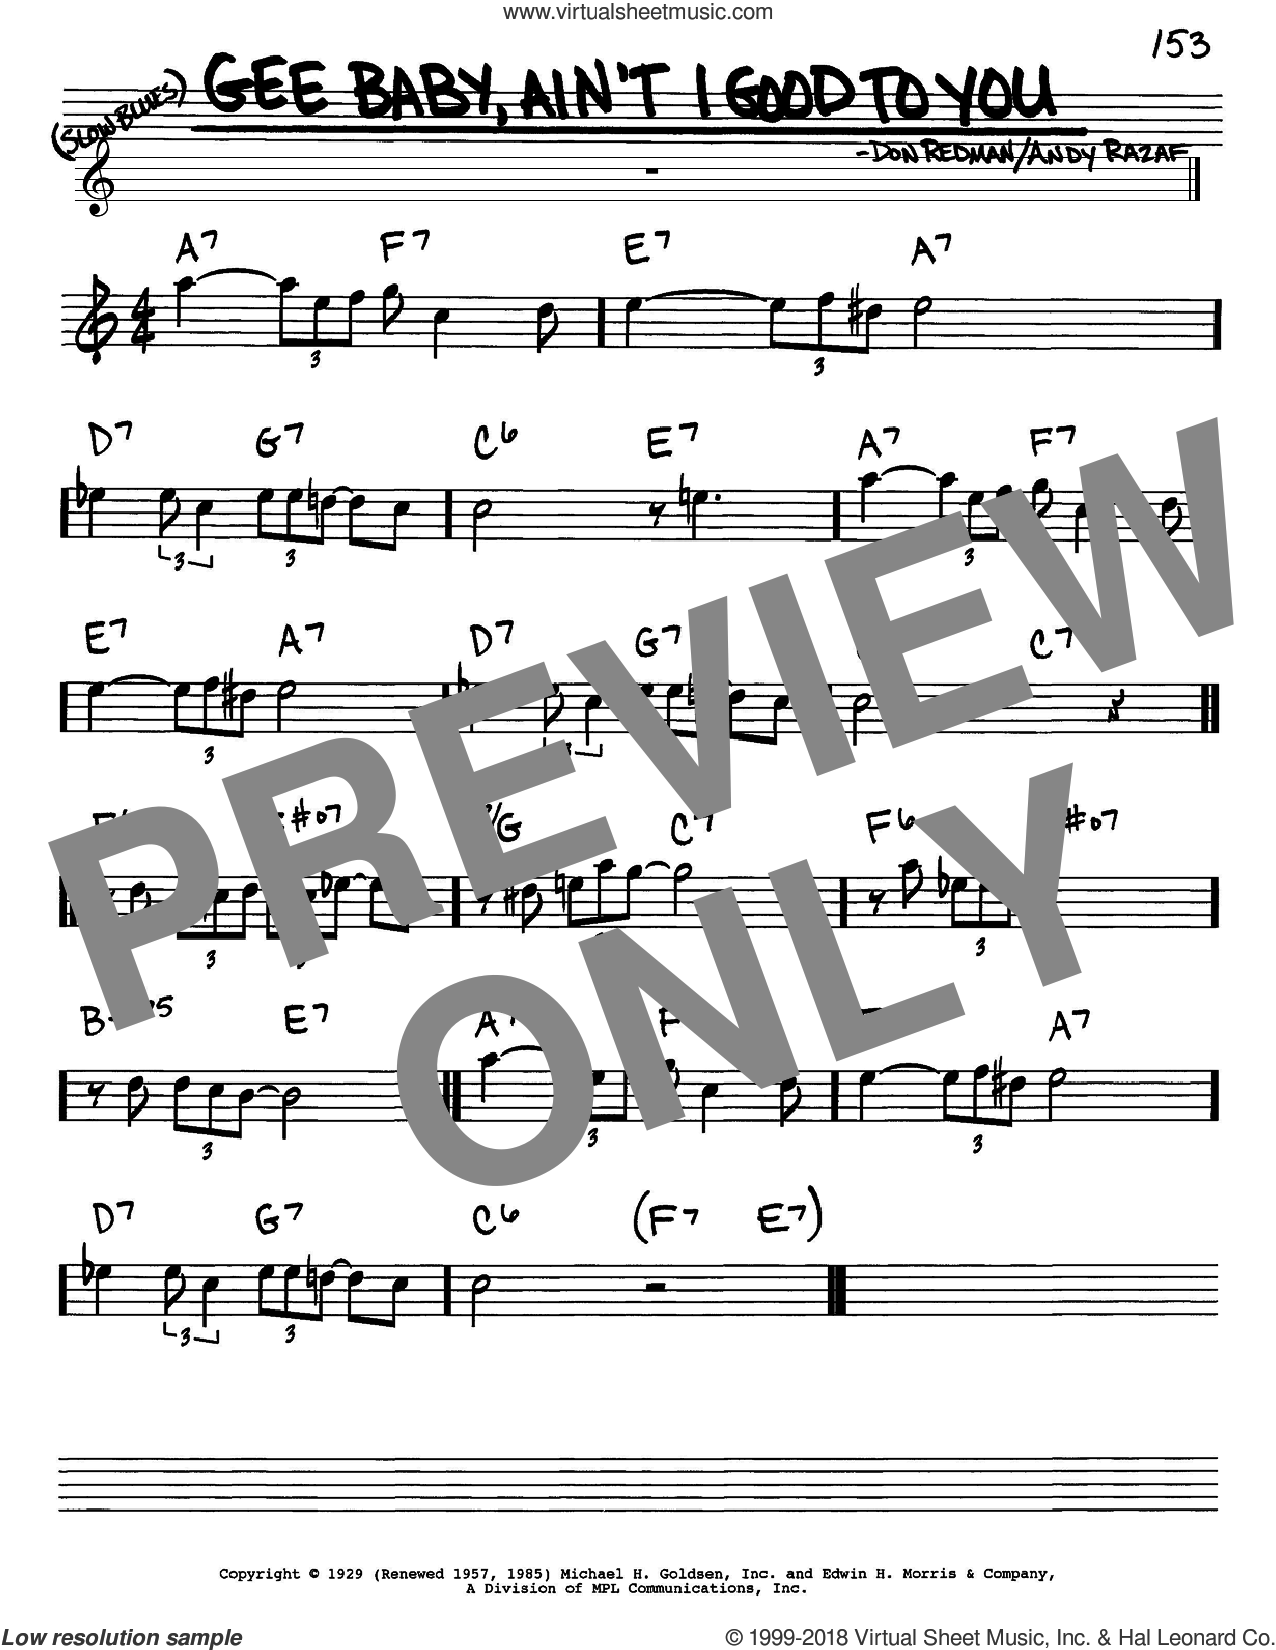 Gee Baby, Ain't I Good To You sheet music for voice and other instruments (in Eb) by Don Redman and Andy Razaf, intermediate skill level